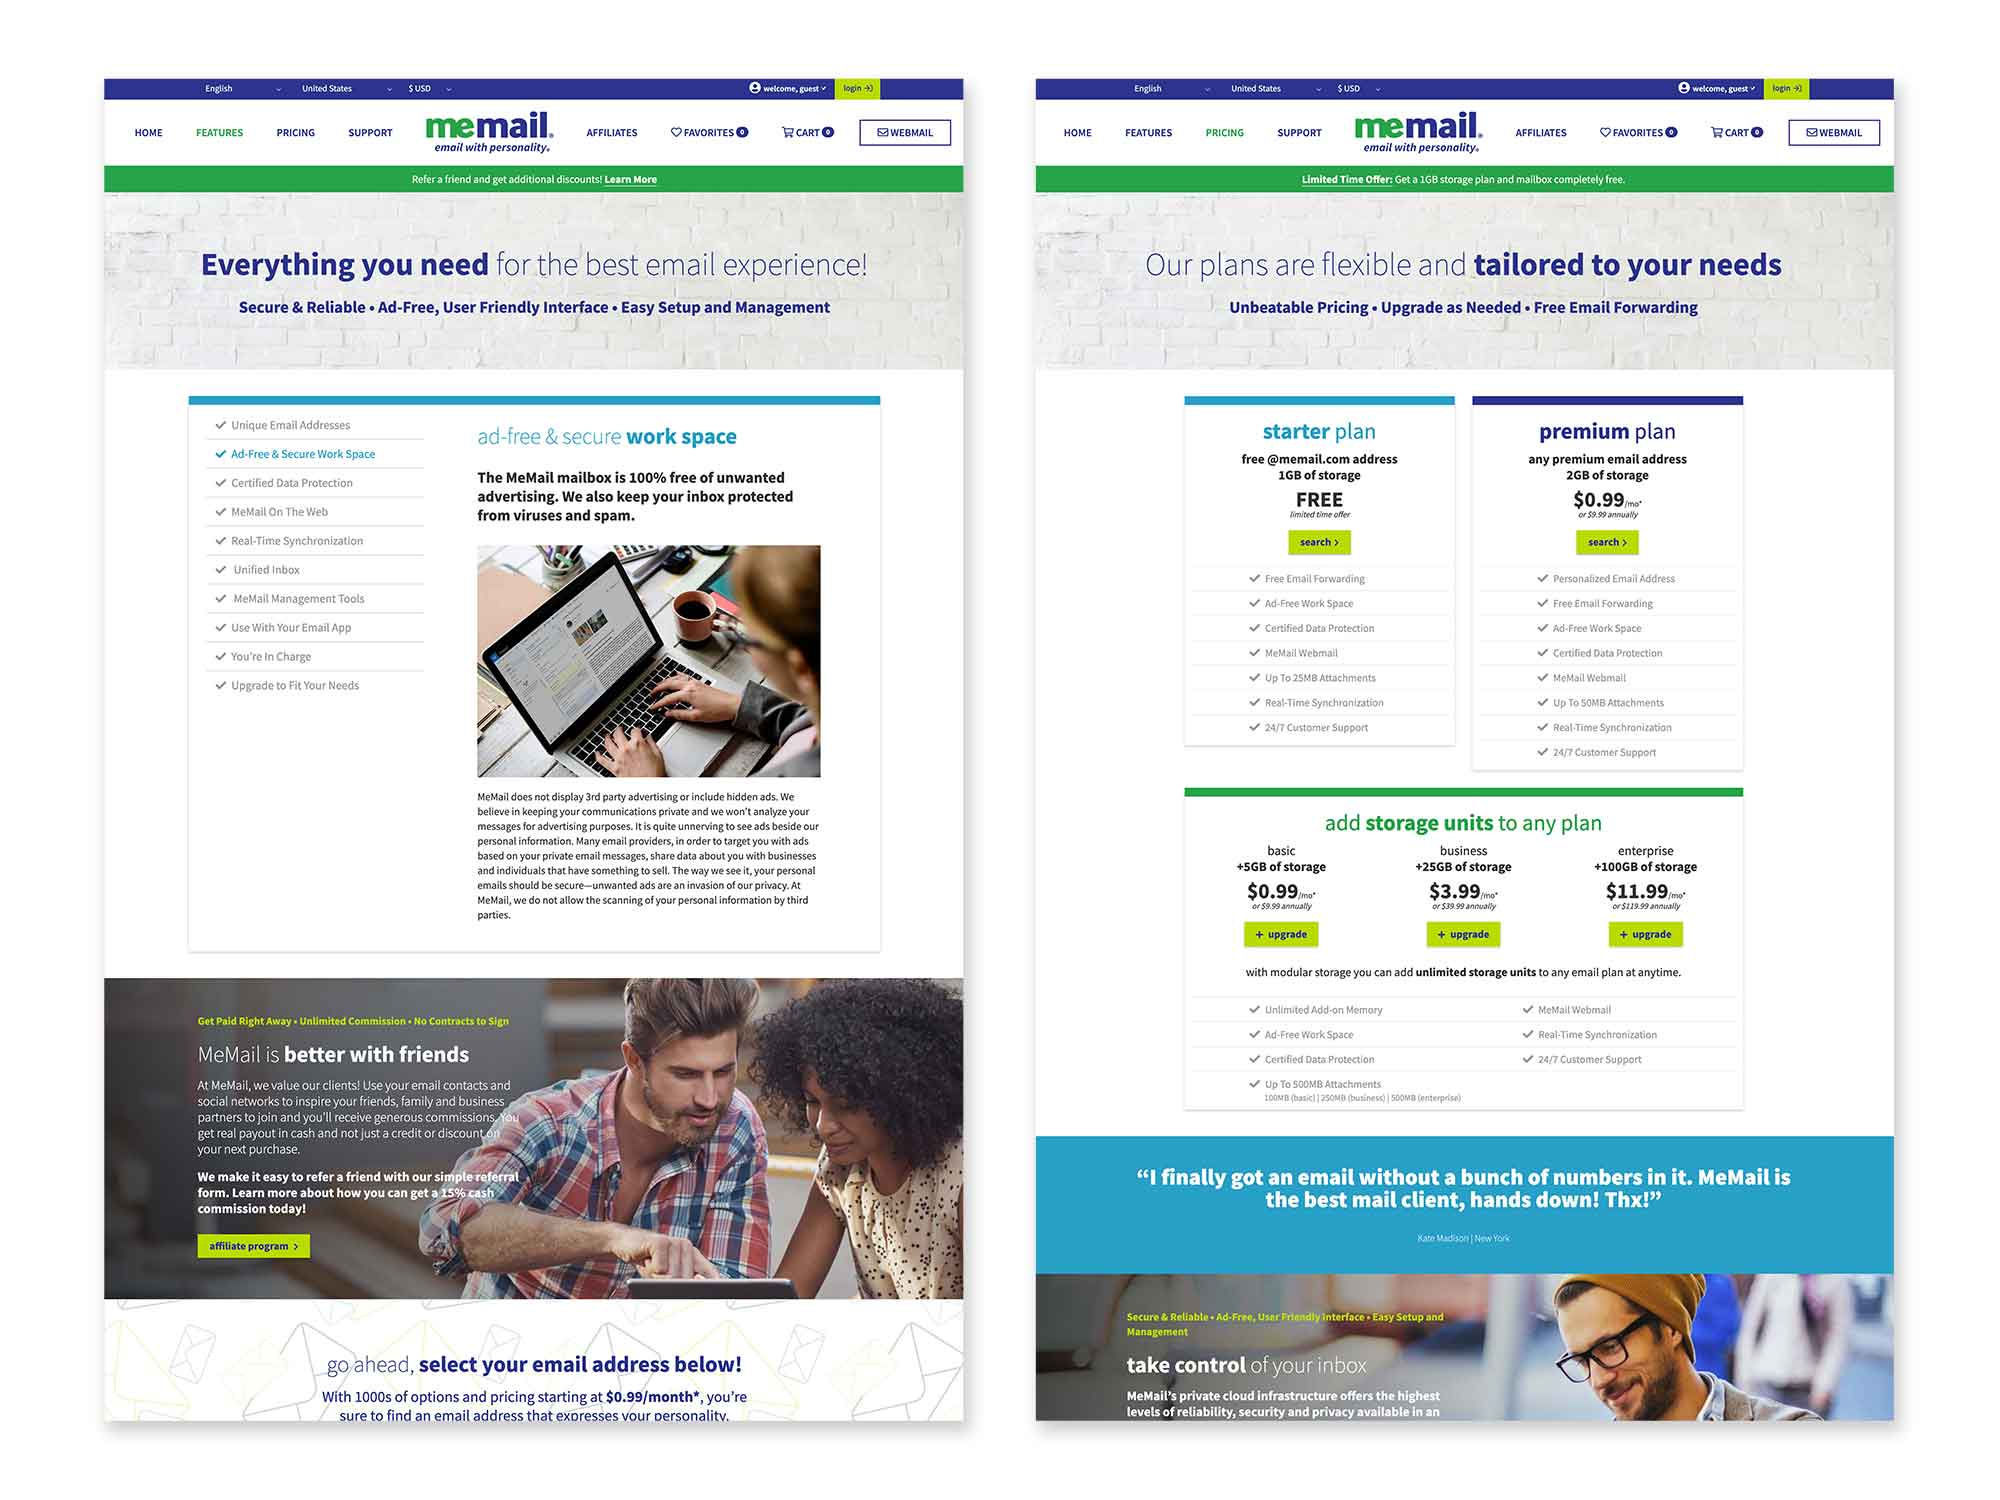 Features and Pricing pages showcase the wide range of benefits and options that come with MeMail plans.